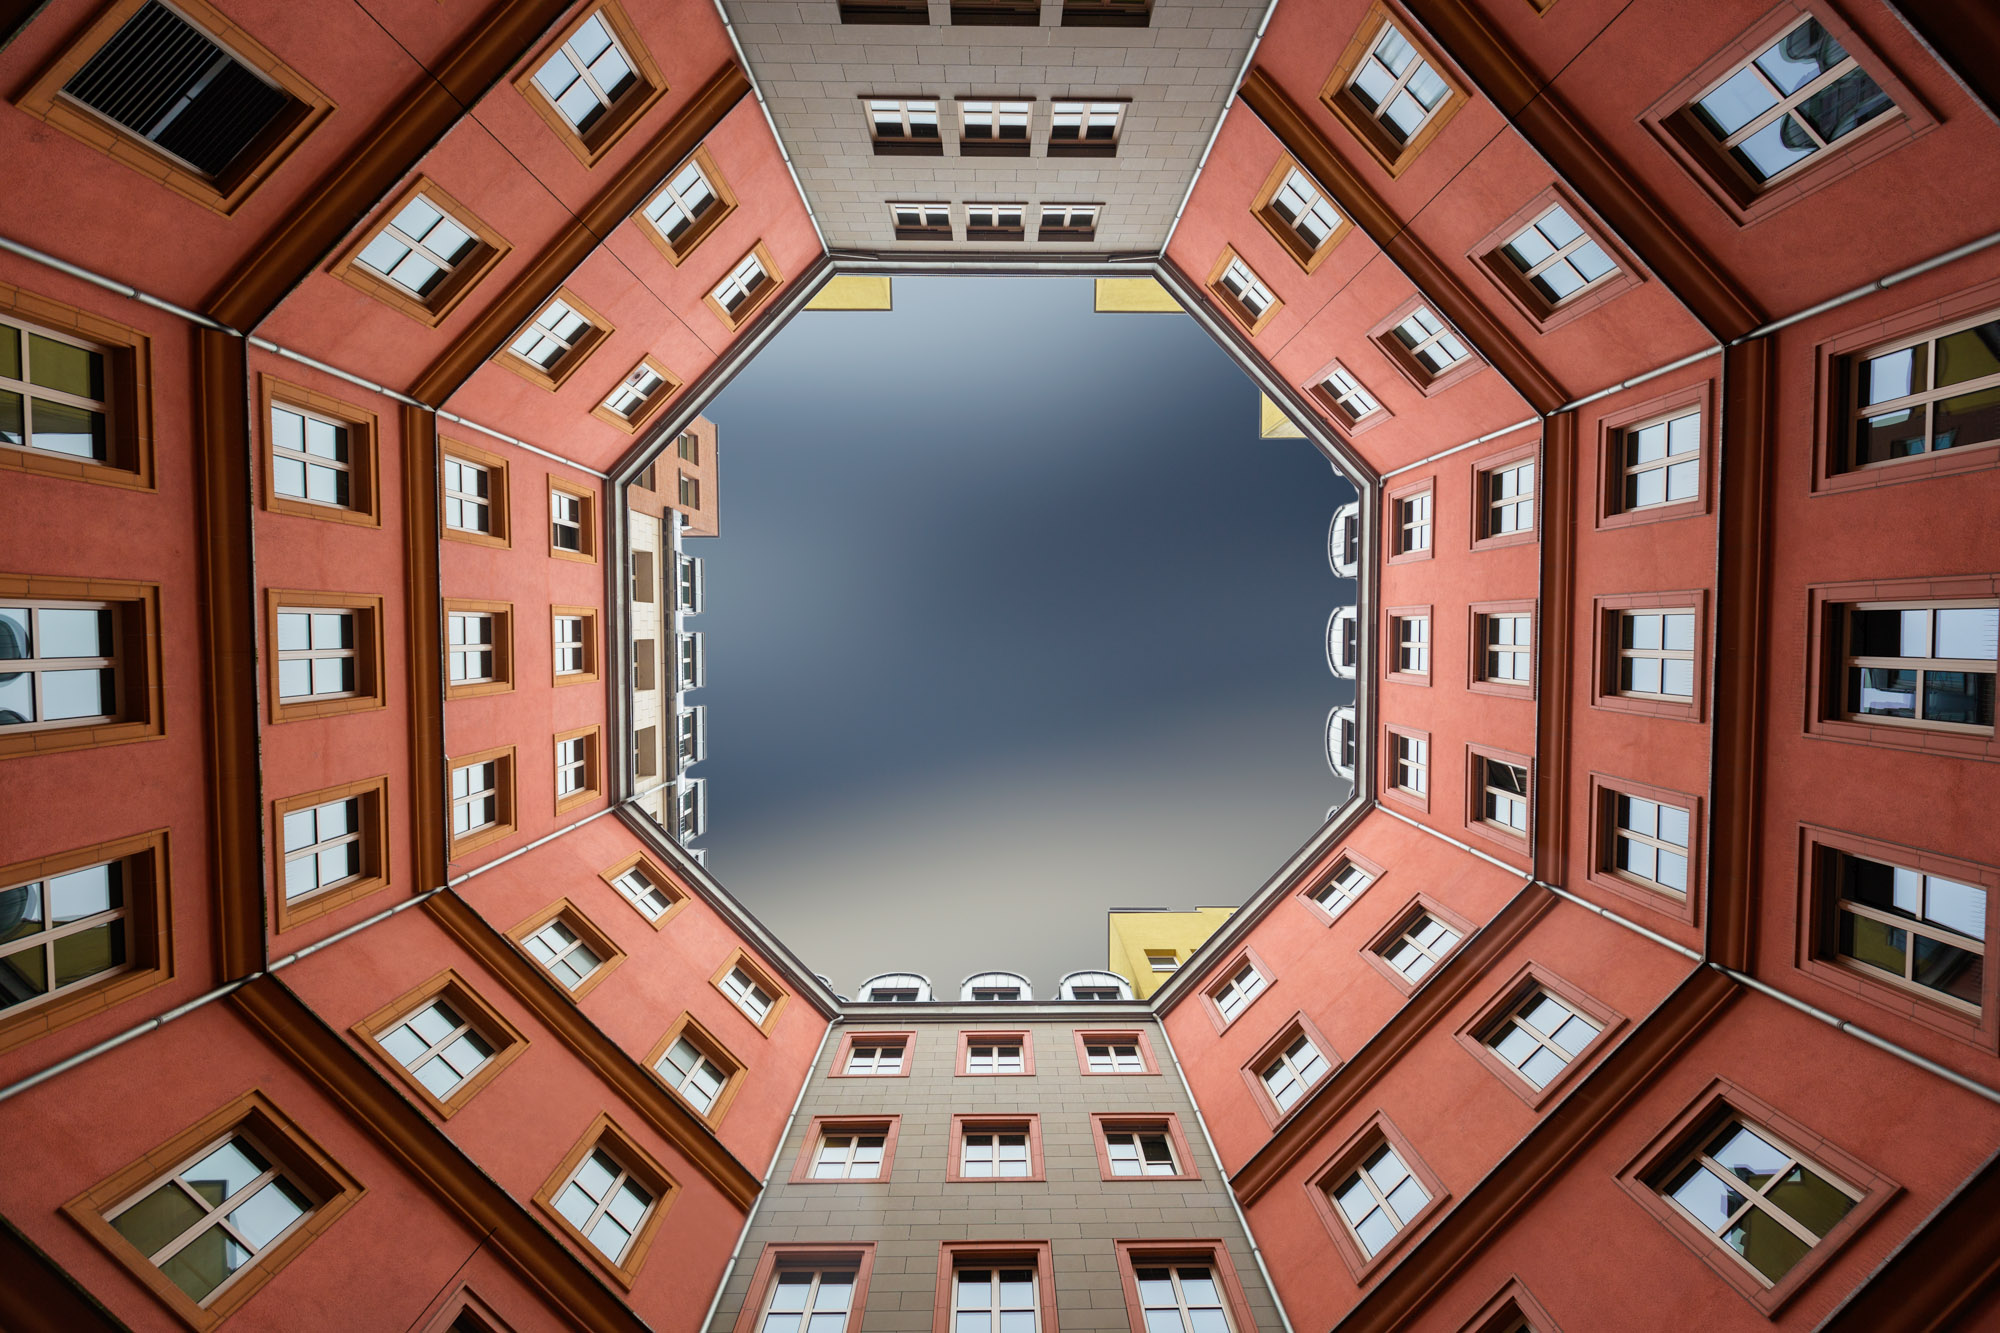 long exposure architecture photograph looking up from courtyard in building in Vienna